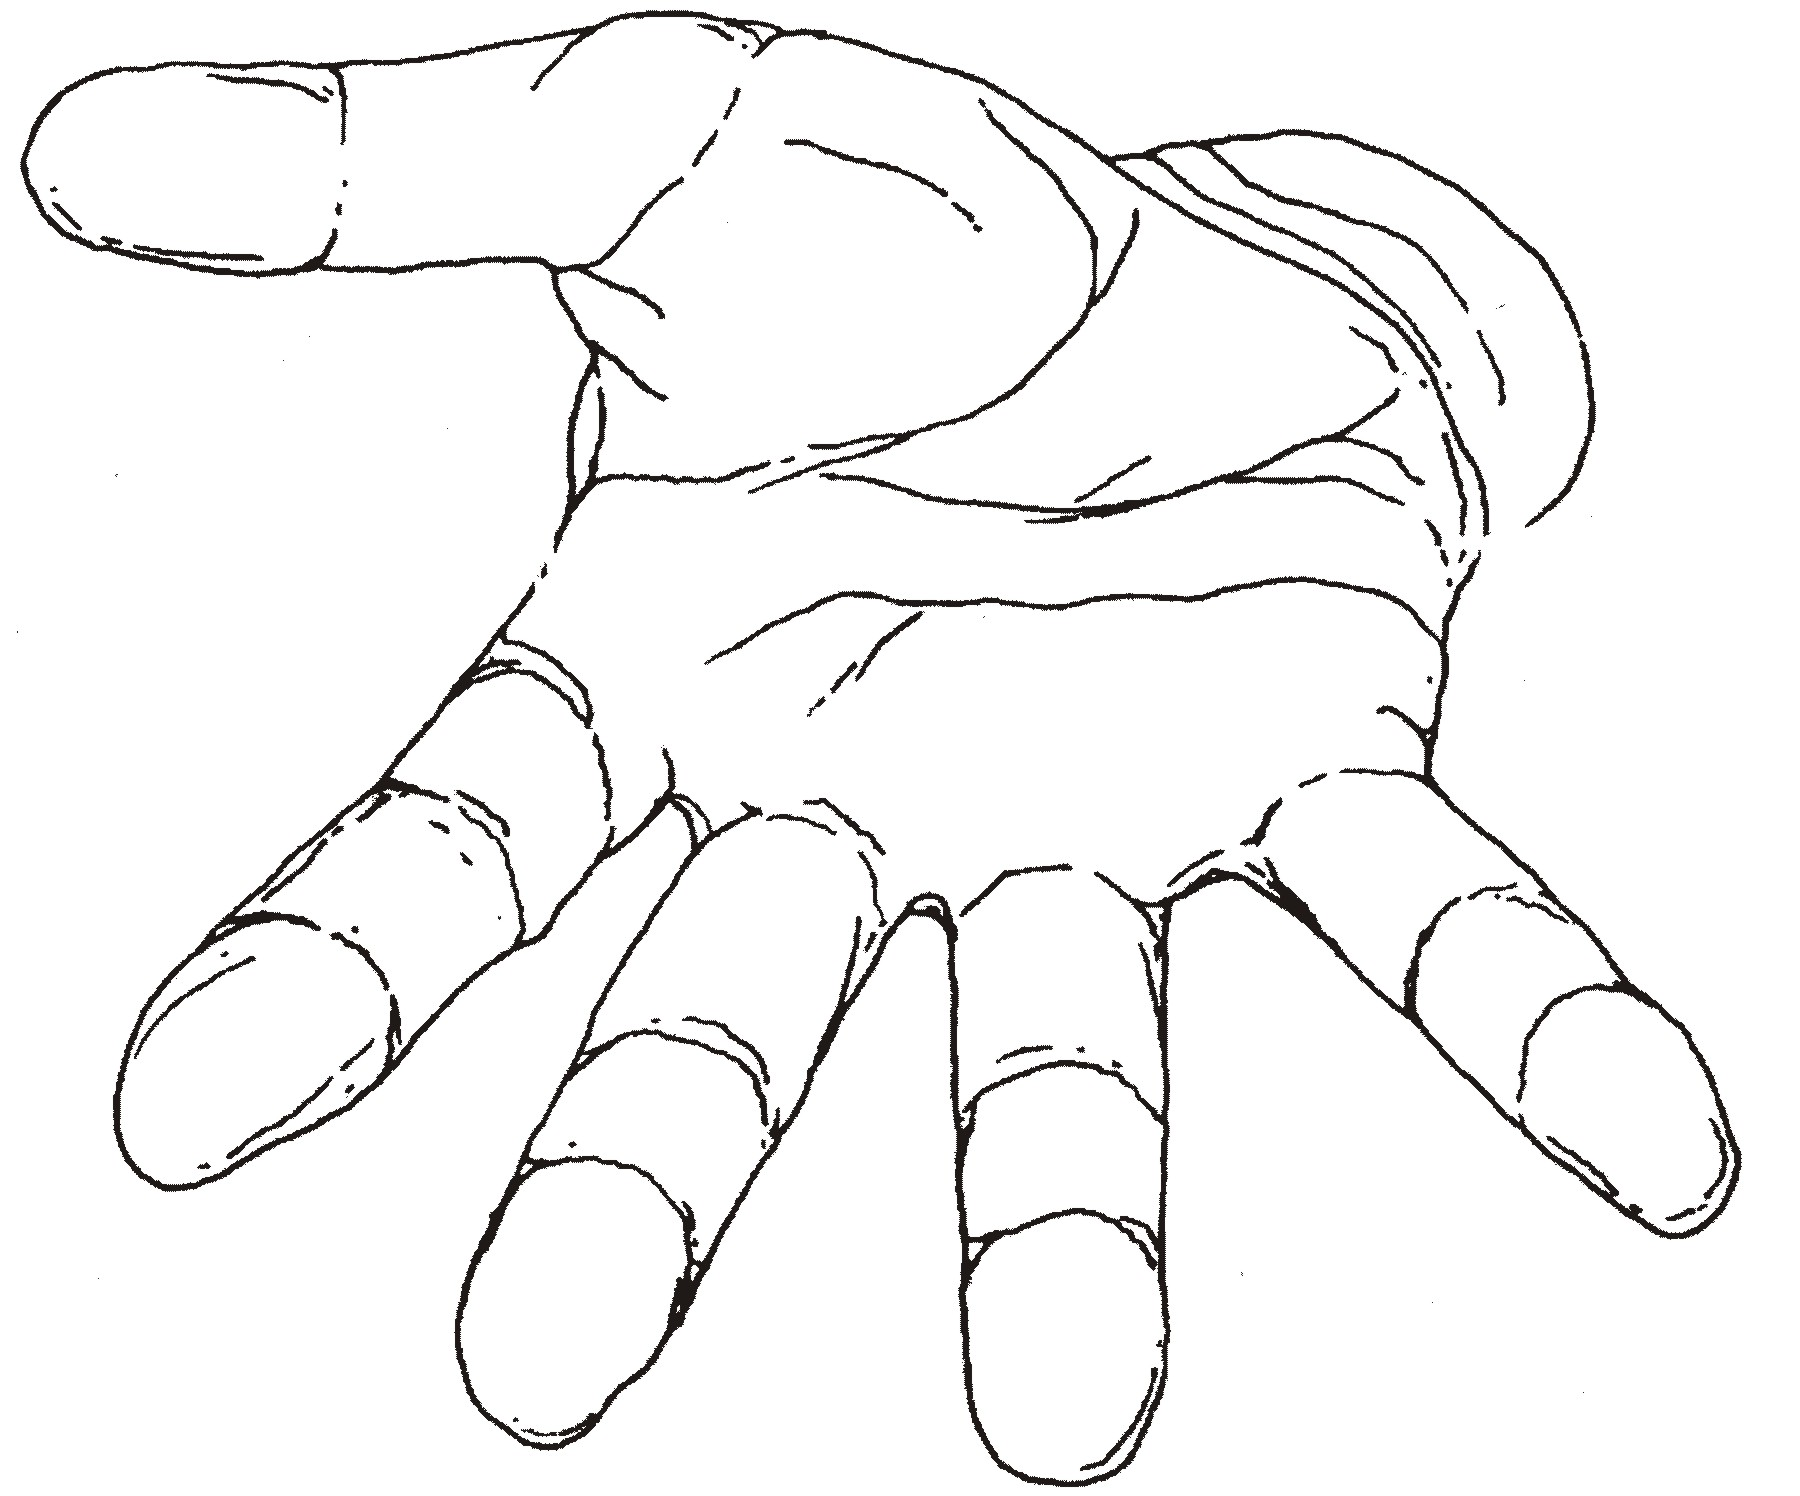 line drawing of hands at getdrawings com free for personal use